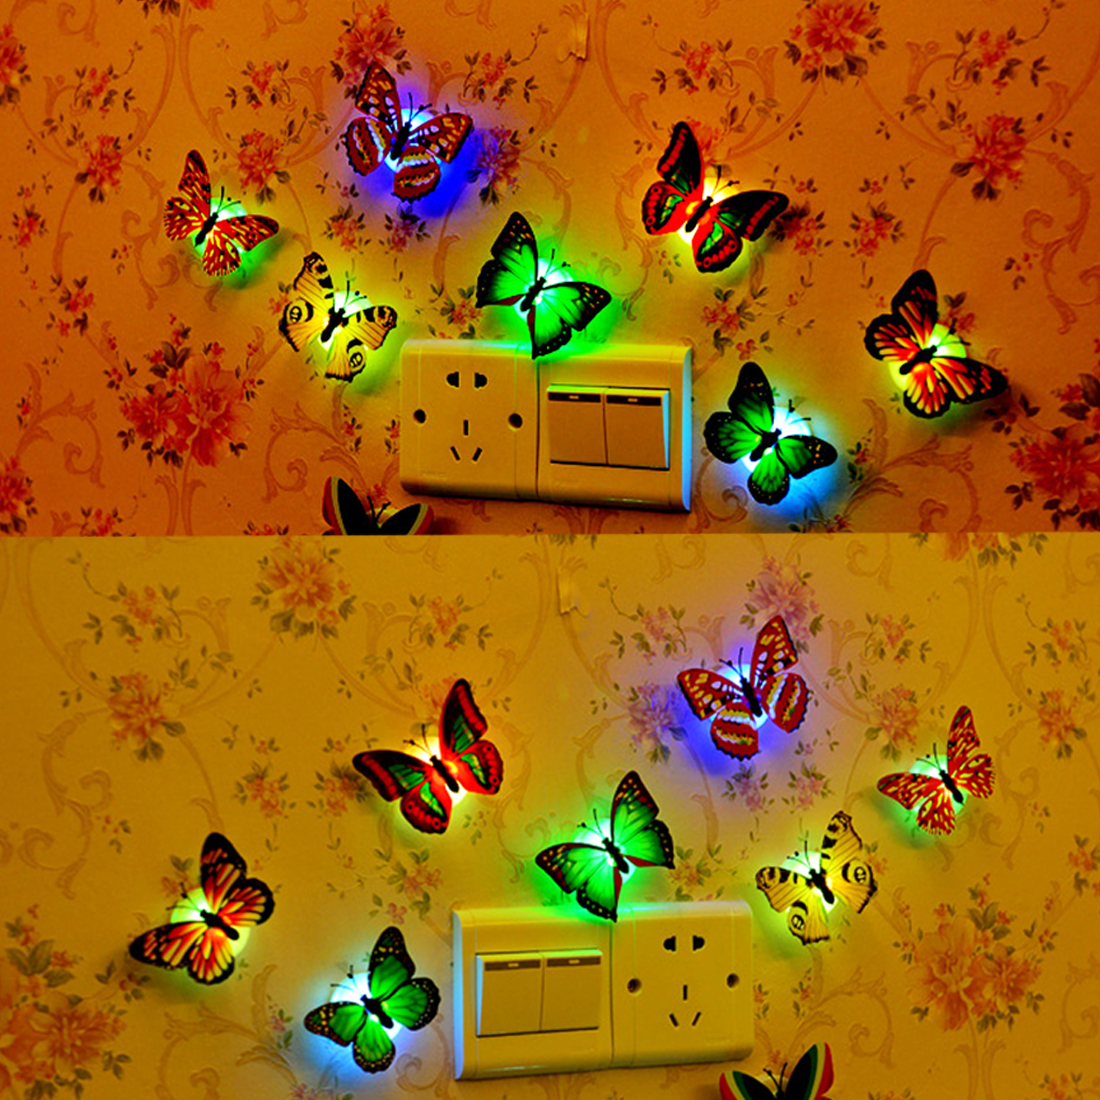 LED Night Light Colorful Changing Butterfly Lamp Home Room Party Desk Wall Decor Night Lights Kids Bedroom Decals